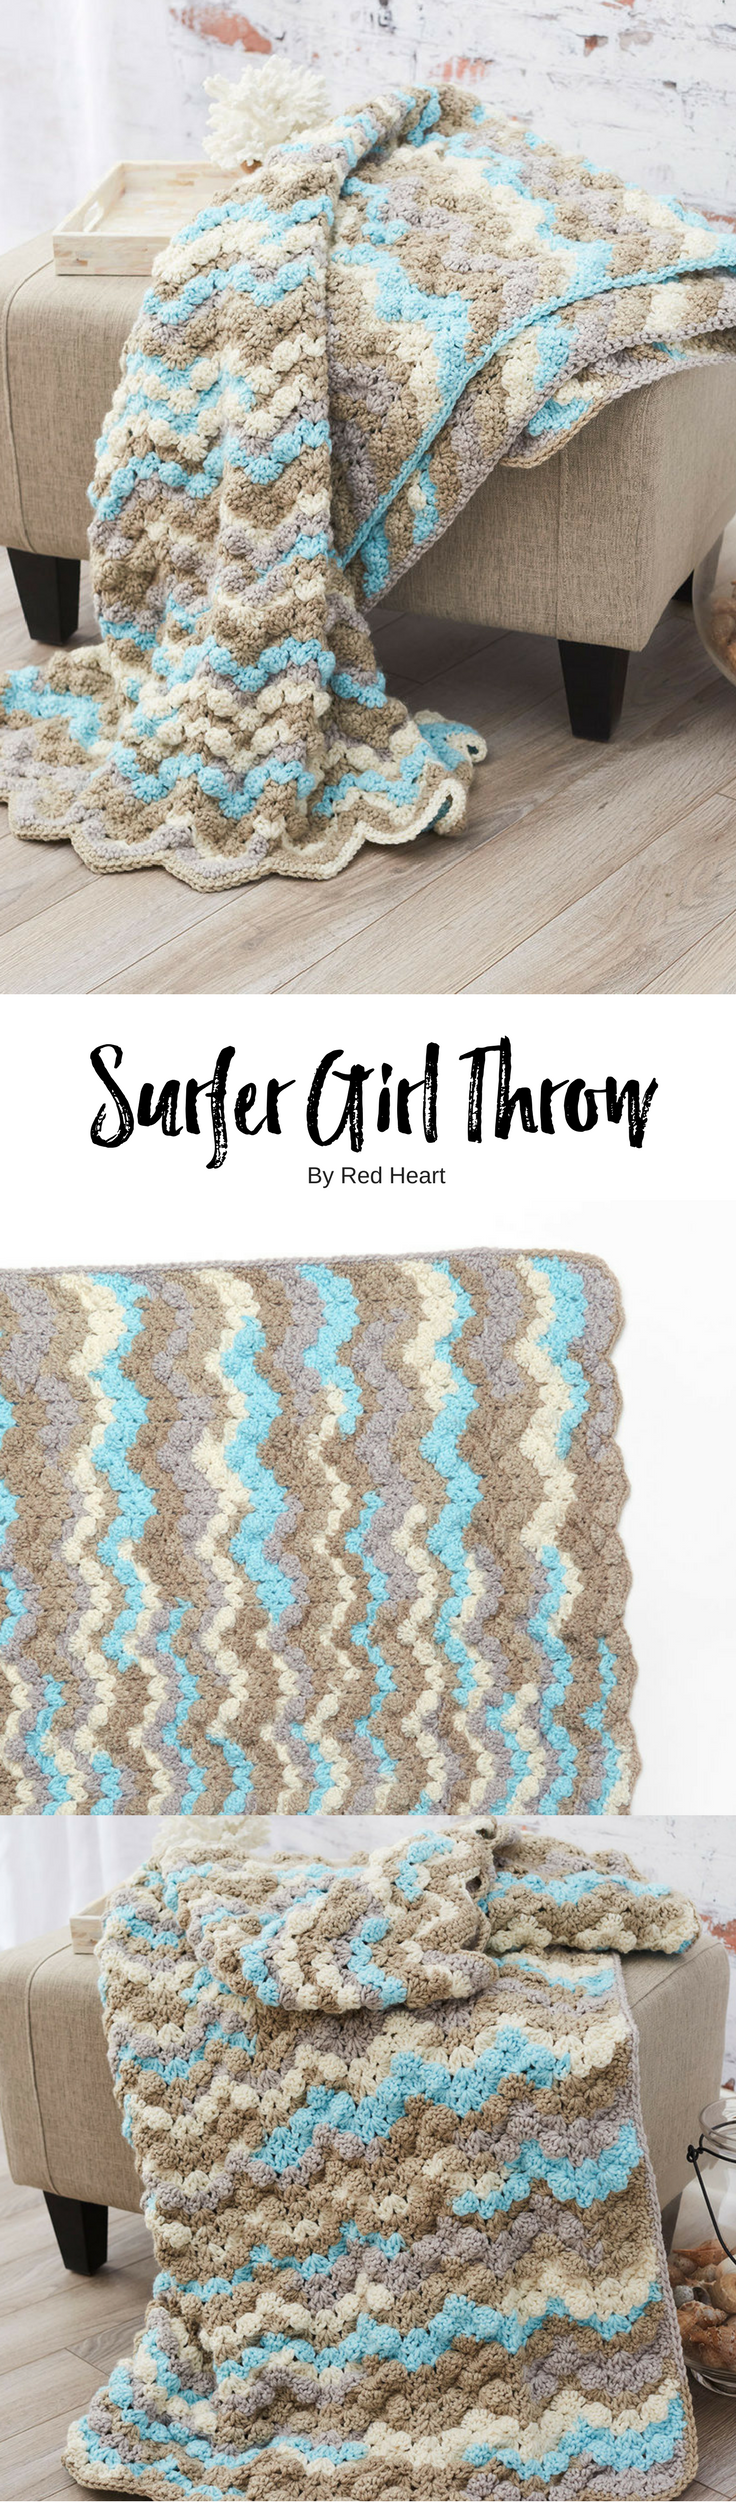 Surfer Girl Throw free crochet pattern in With Love Stripes ...